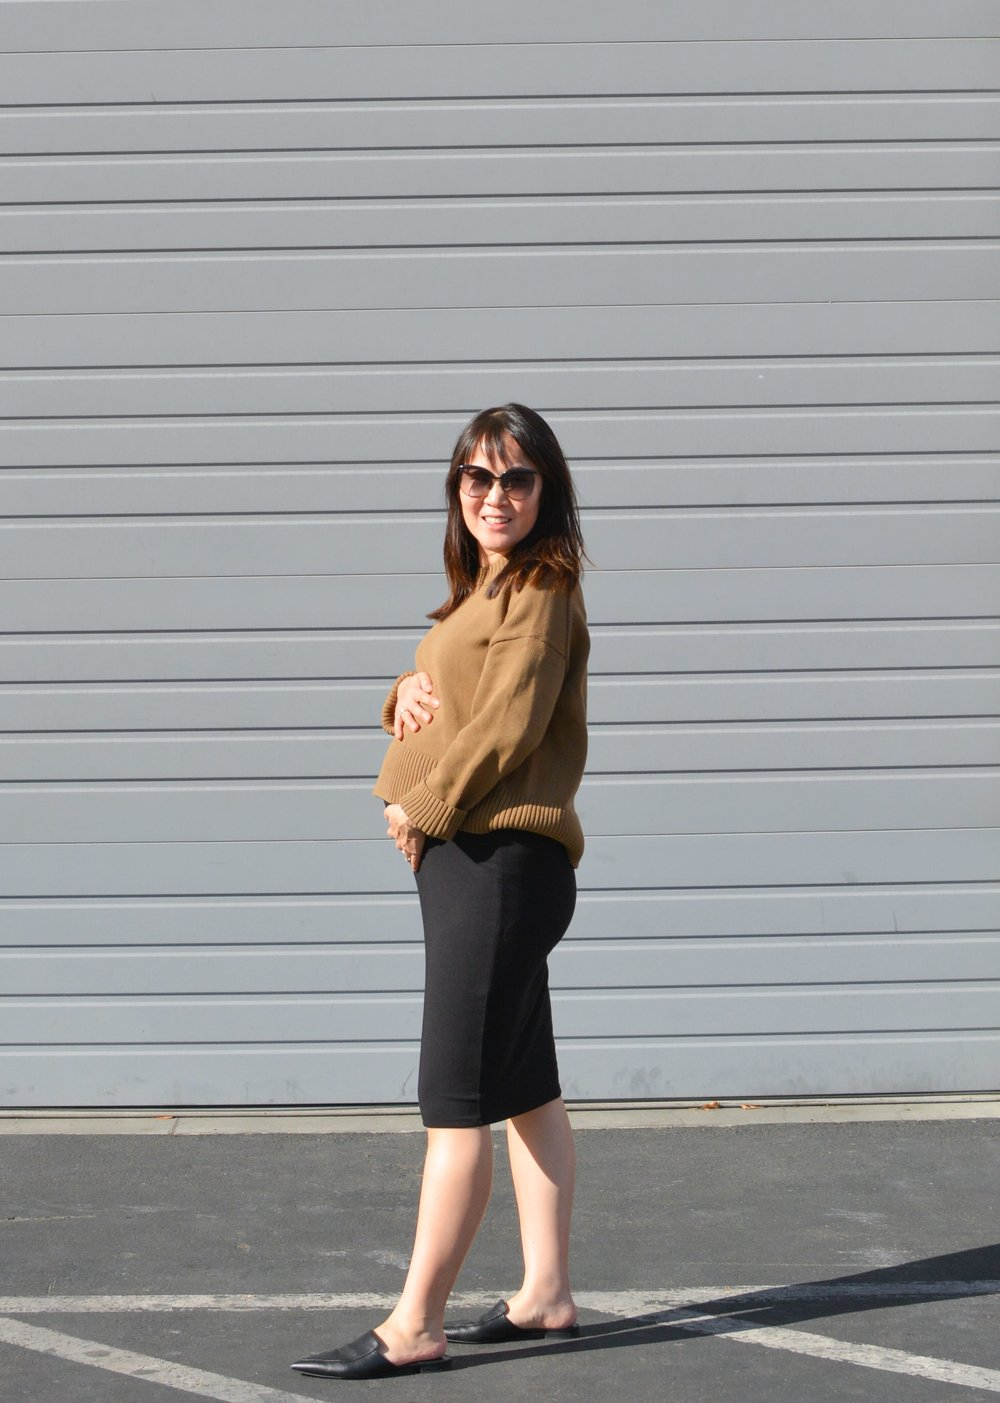 Everlane review soft cotton square crew (2 of 4)-min.jpg